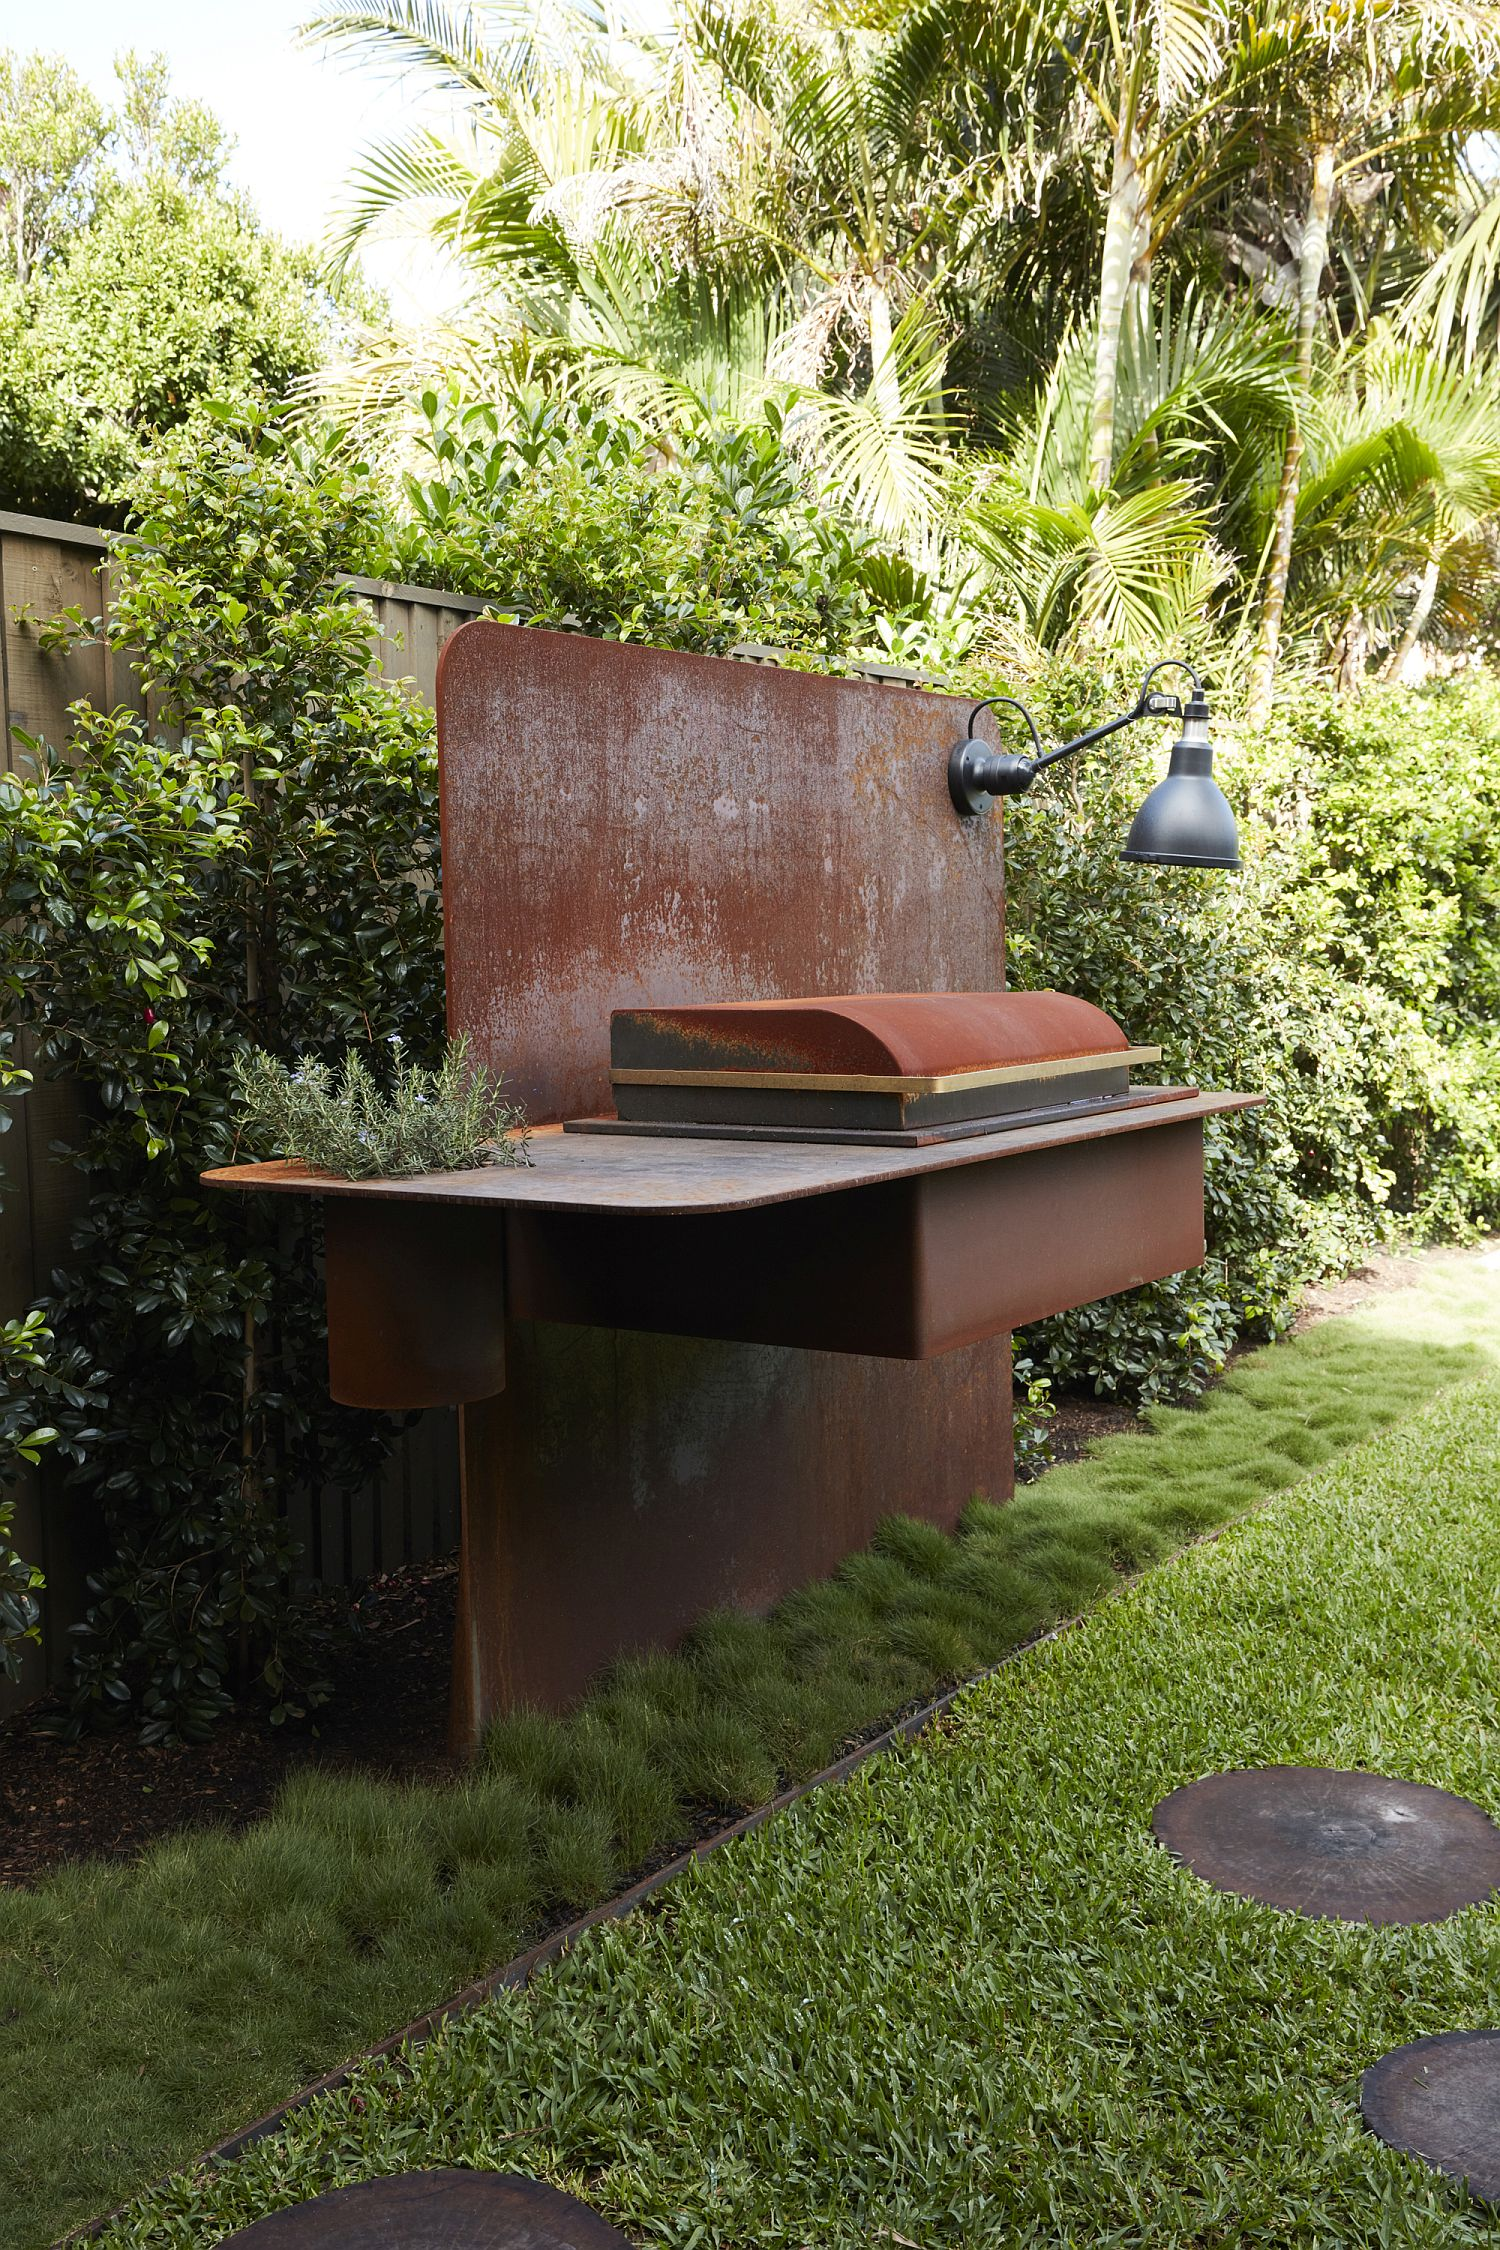 Outdoor barbeucue area with a rusted finsih